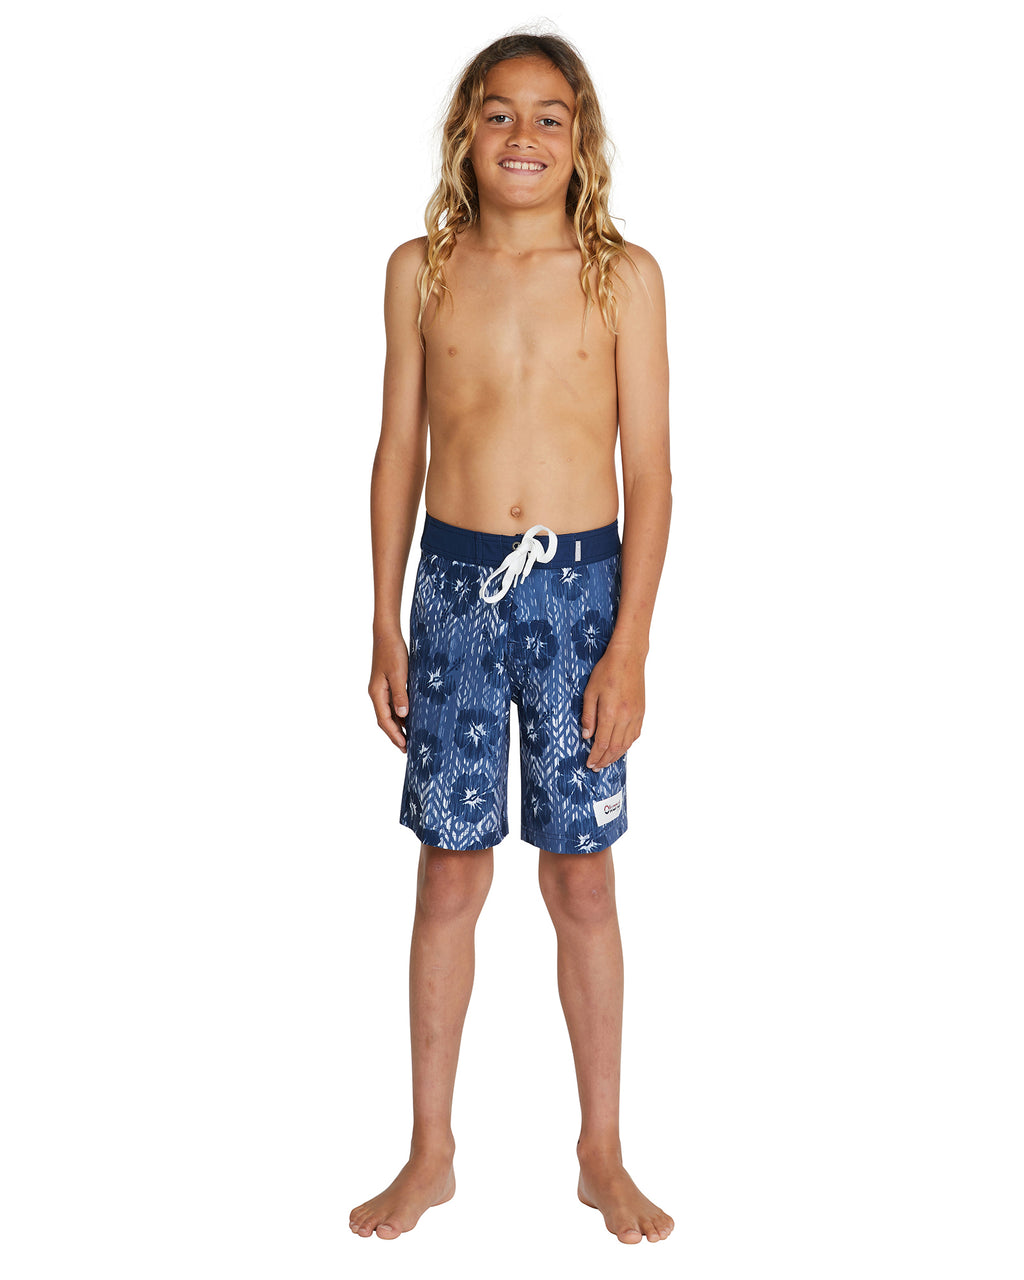 Kids Board Shorts - Ikat Navy Boardrider